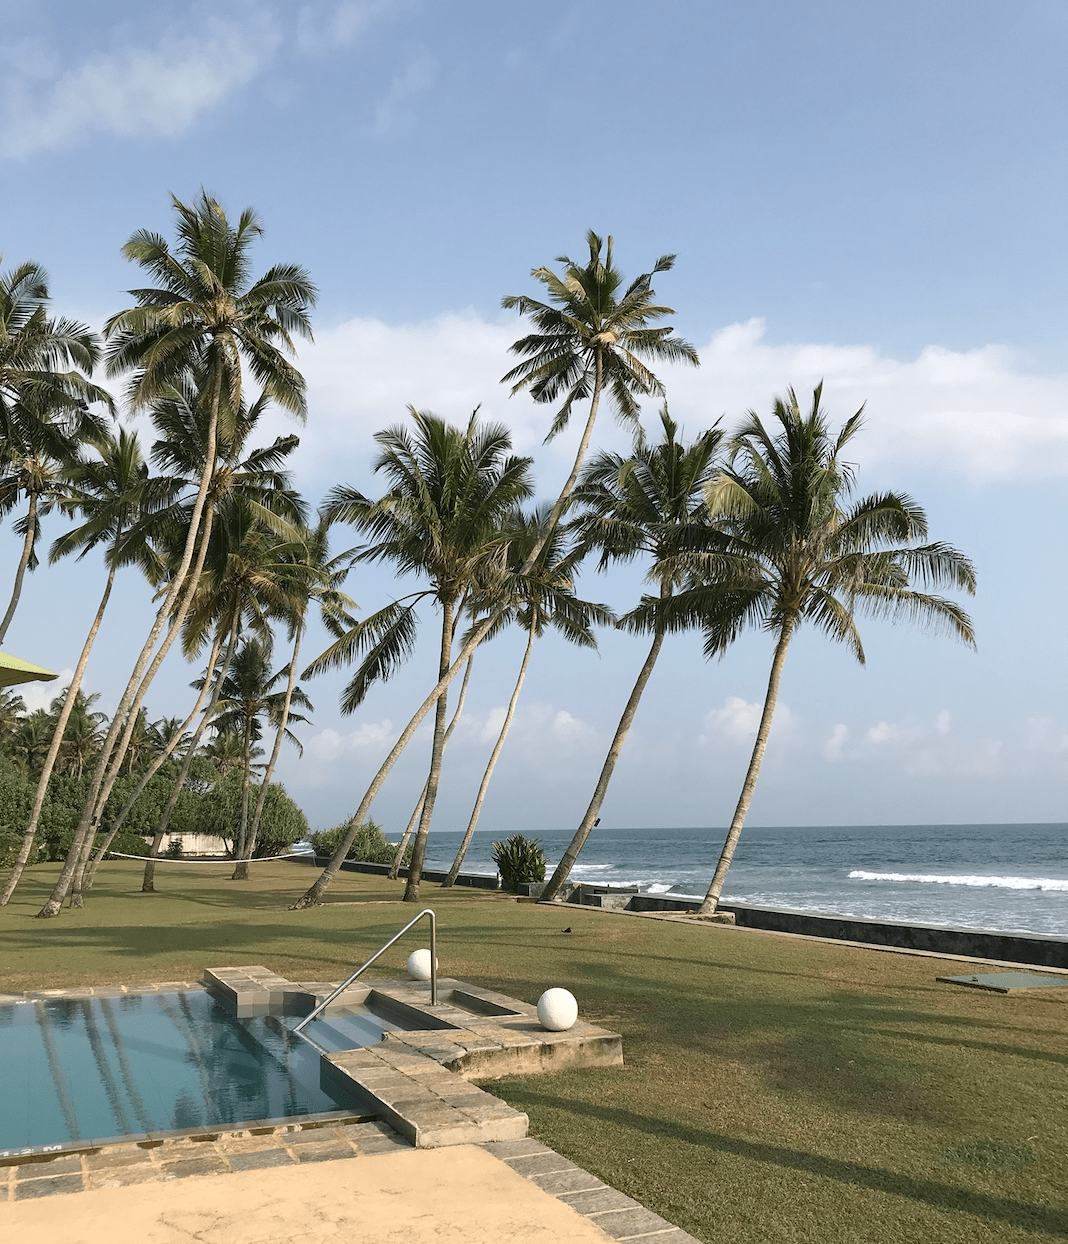 View of pool, garden and beach at Tanamera Estate near Galle in Sri Lanka